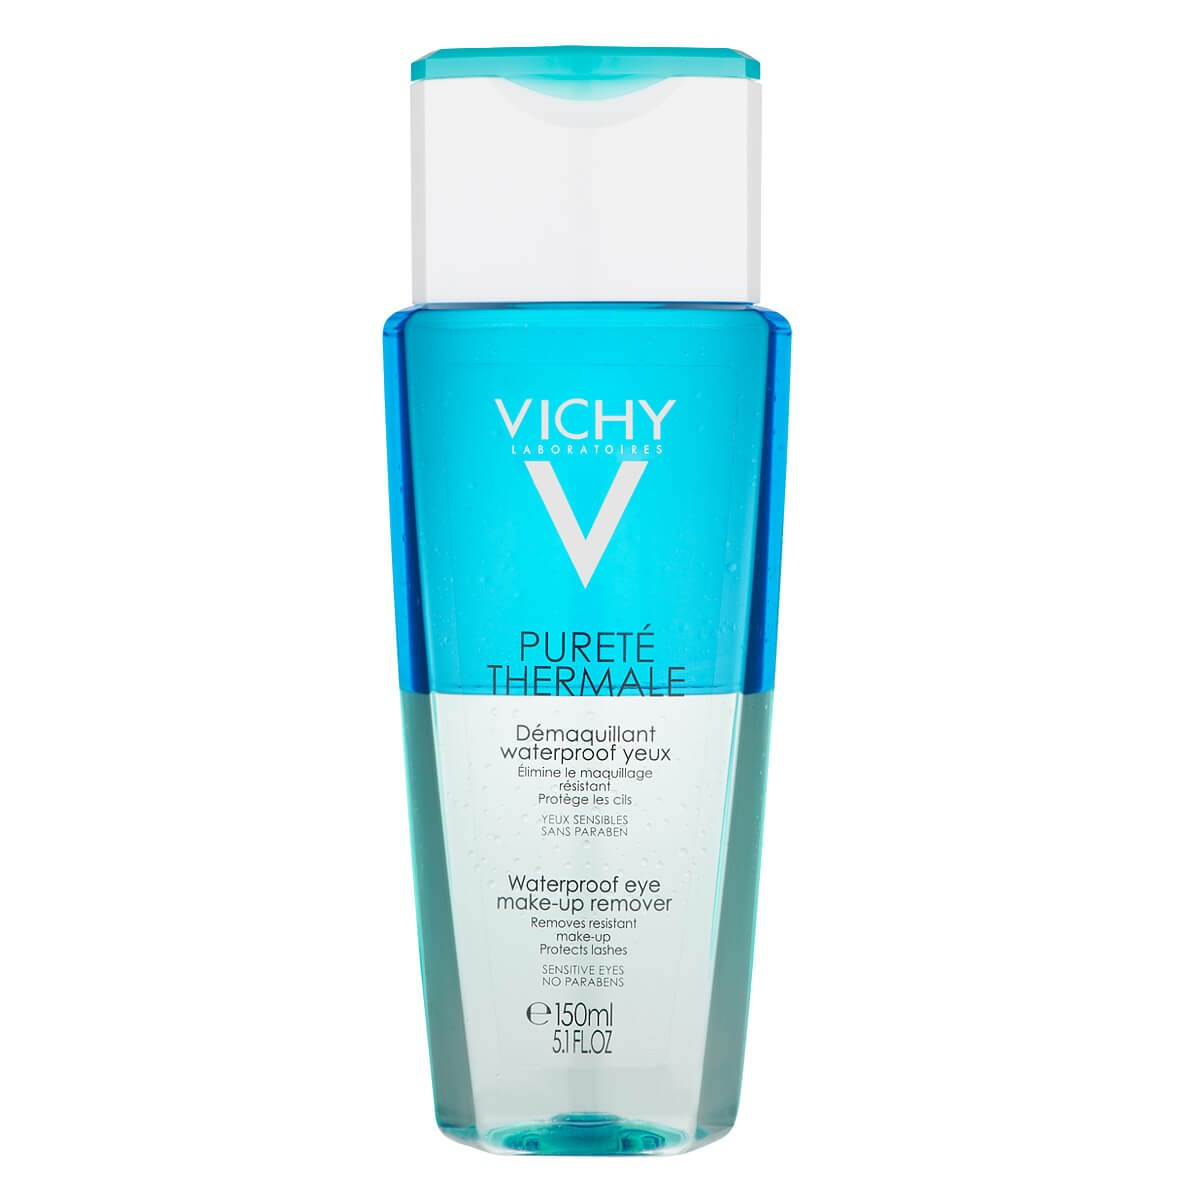 Vichy Purete Thermale Waterproof Eye Makeup Remover